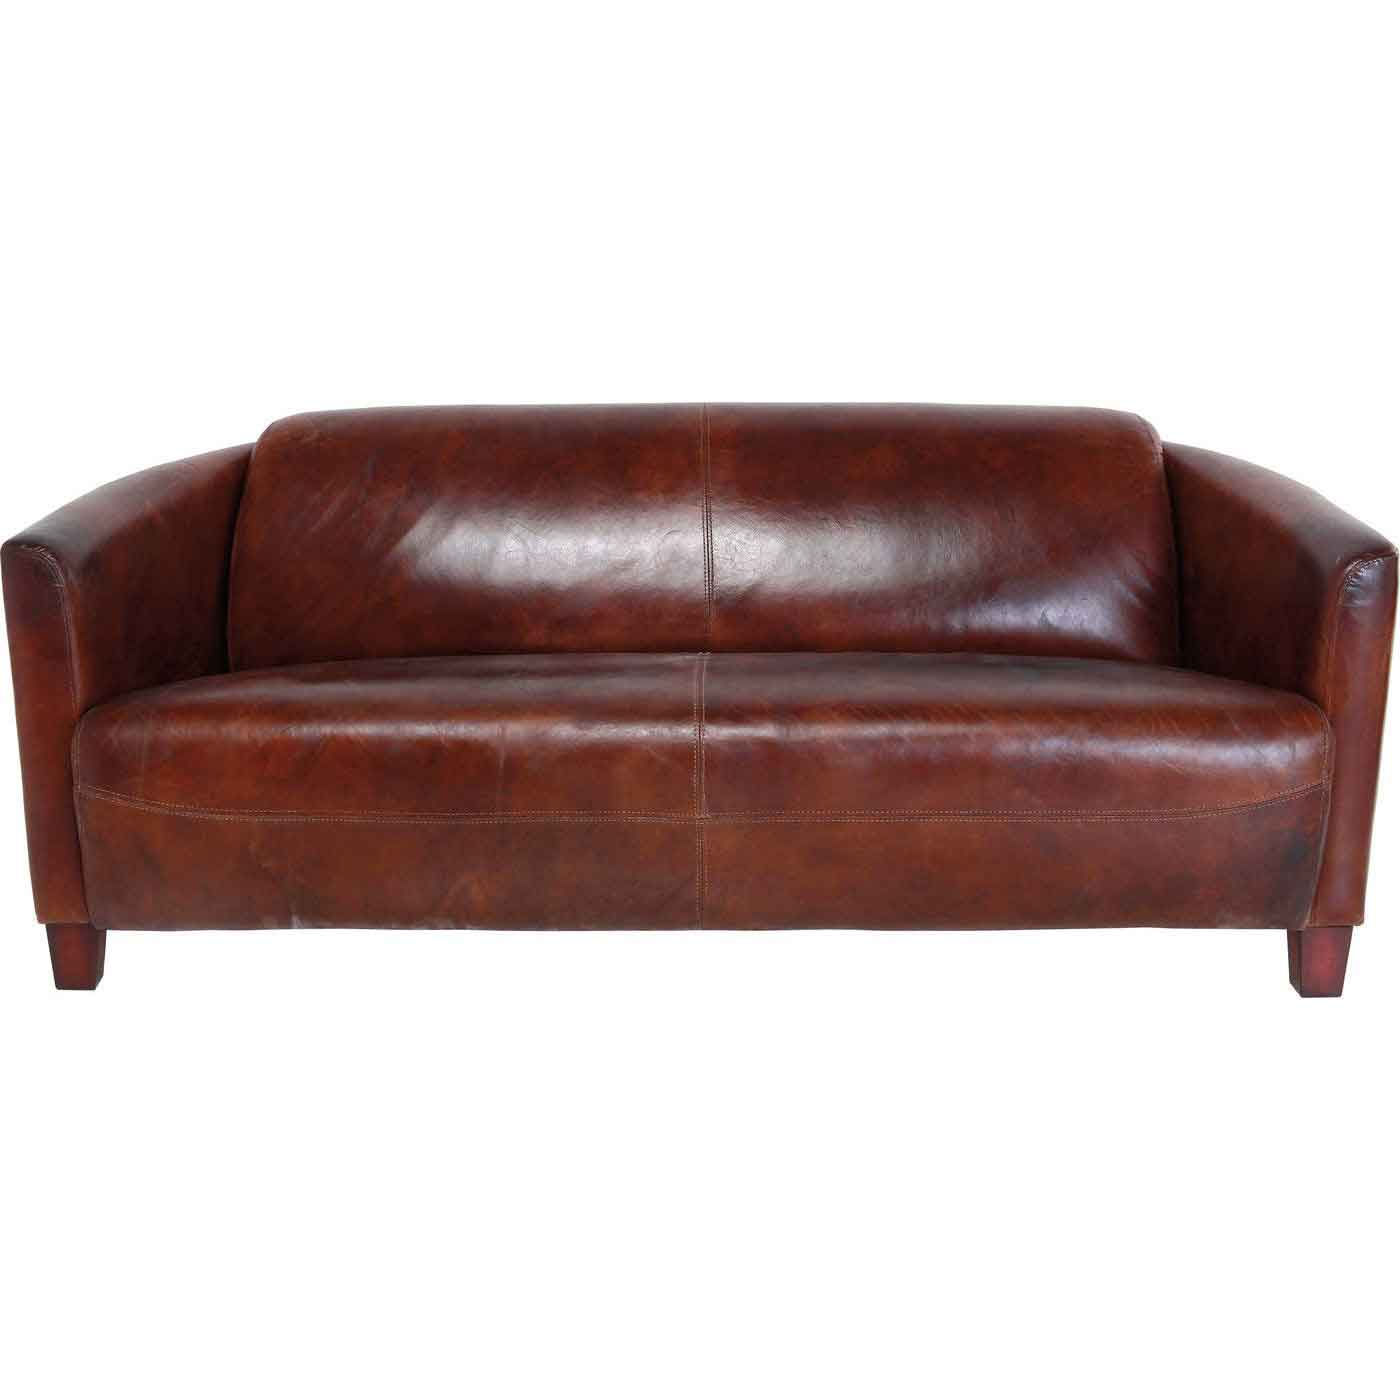 KARE DESIGN Cigar 2 pers. sofa - brunt læder